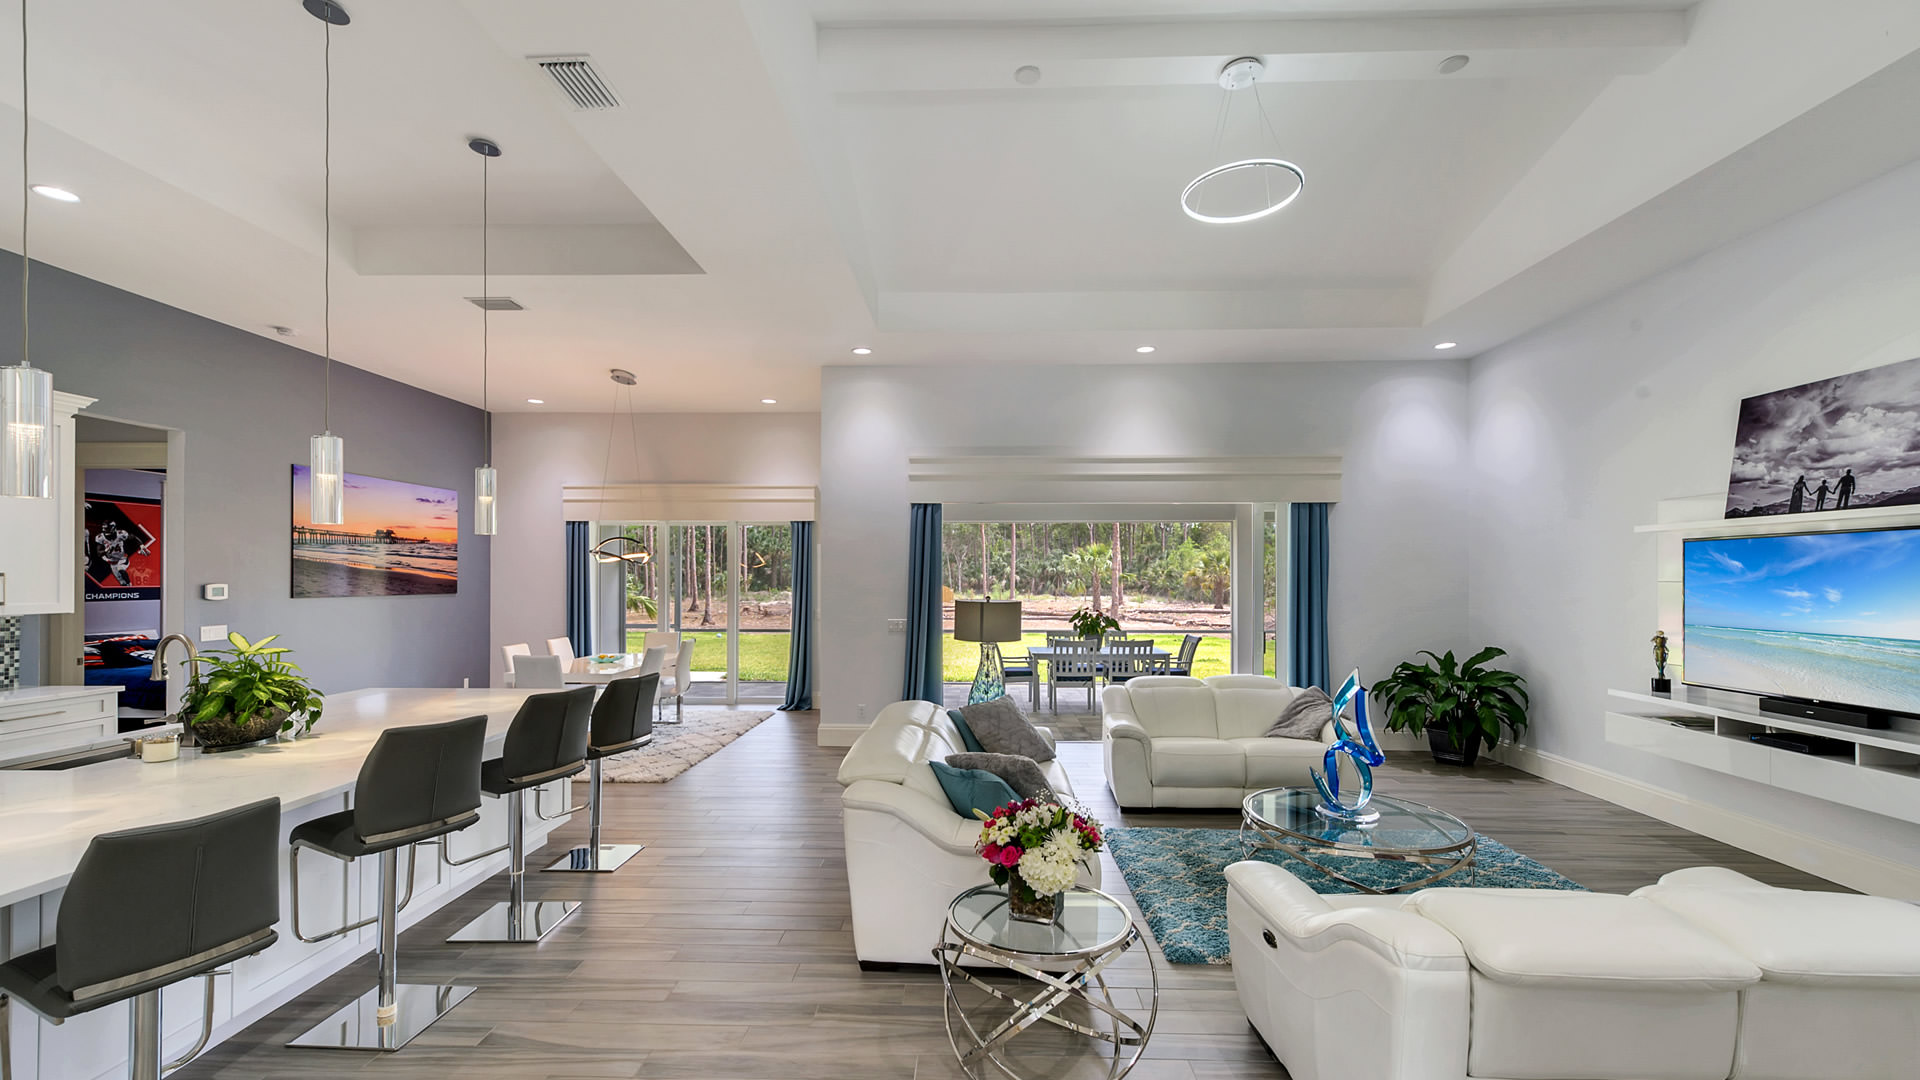 GH Builders Set to Unveil First Model Home in Golden Gate Estates